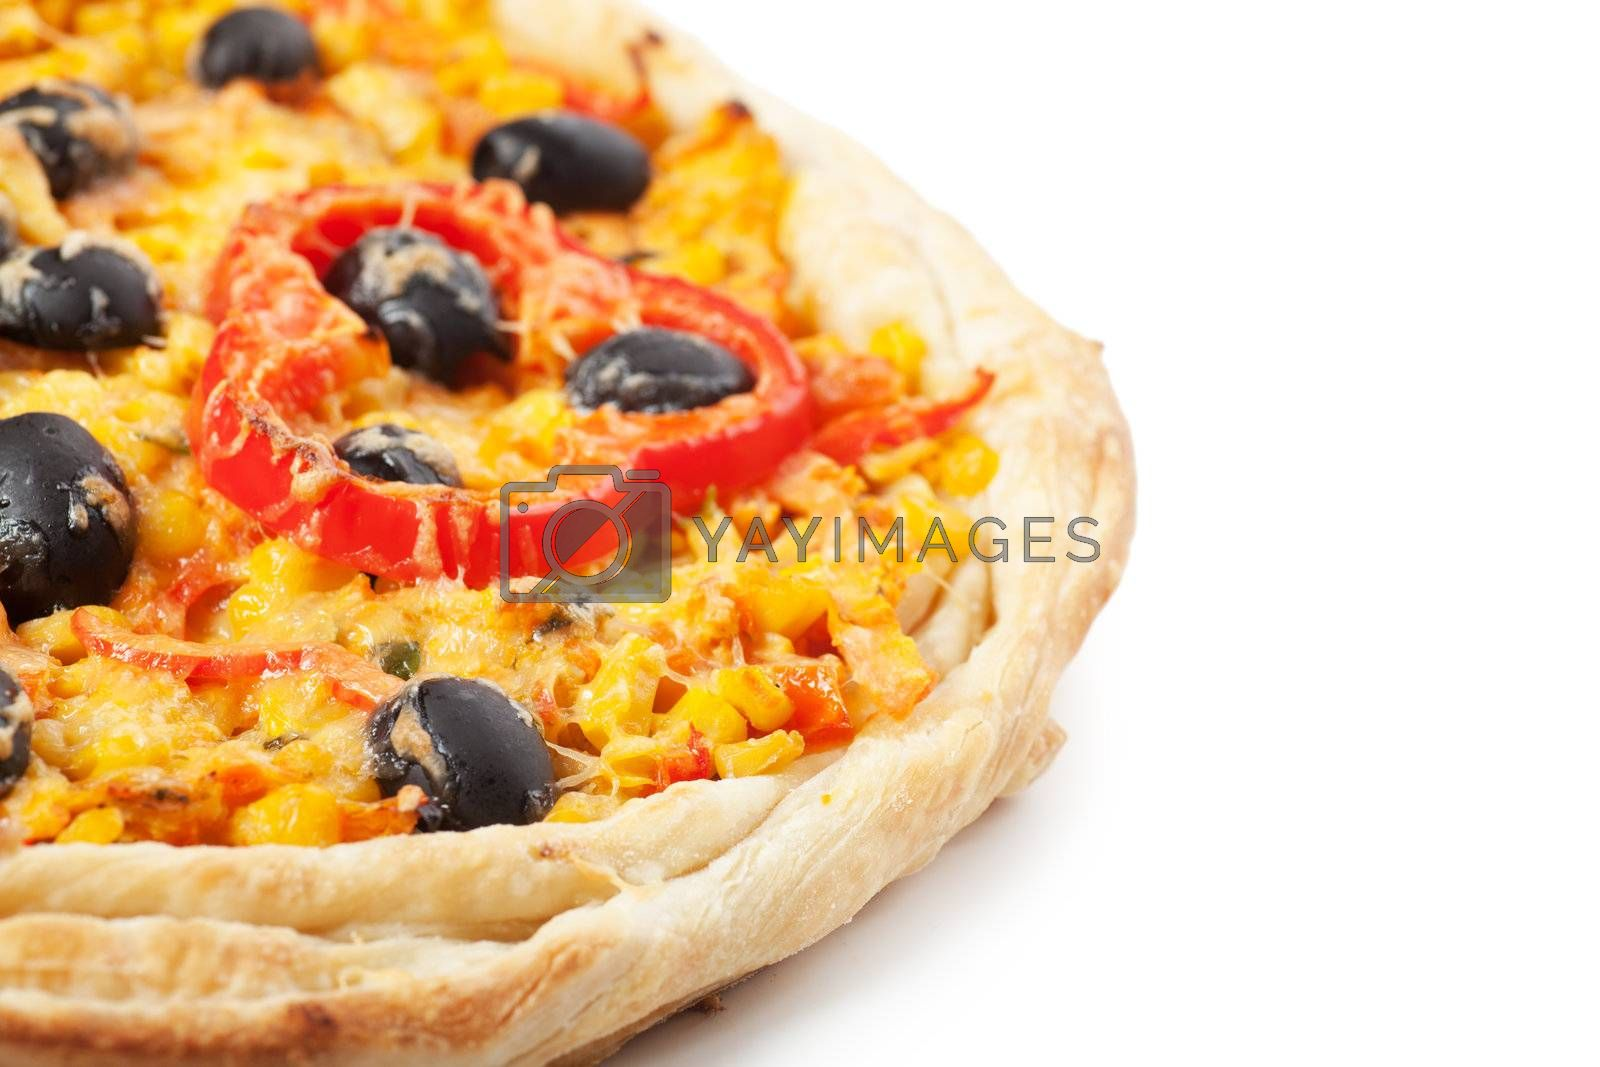 Royalty free image of Pizza by AGorohov